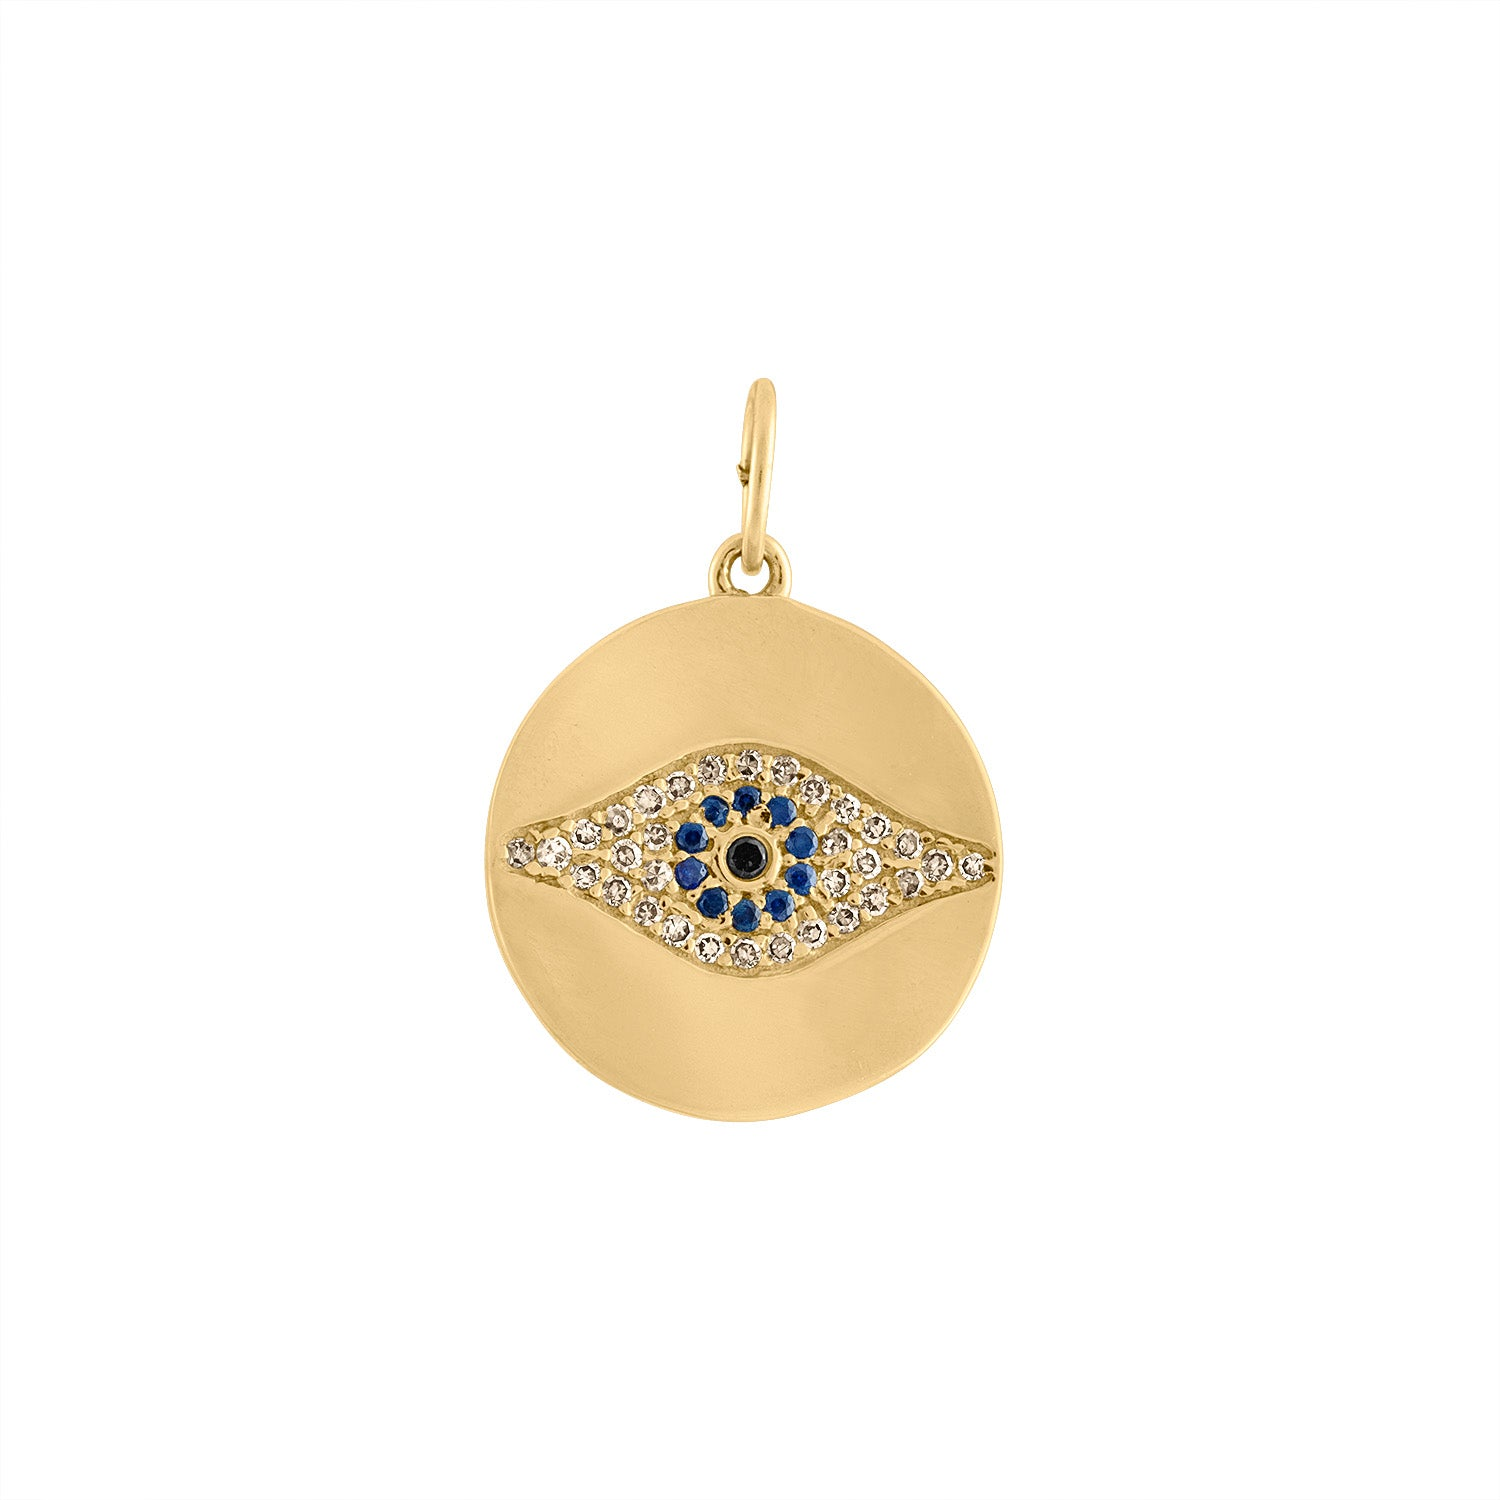 14KT YELLOW GOLD DIAMOND EVIL EYE DISK CHARM